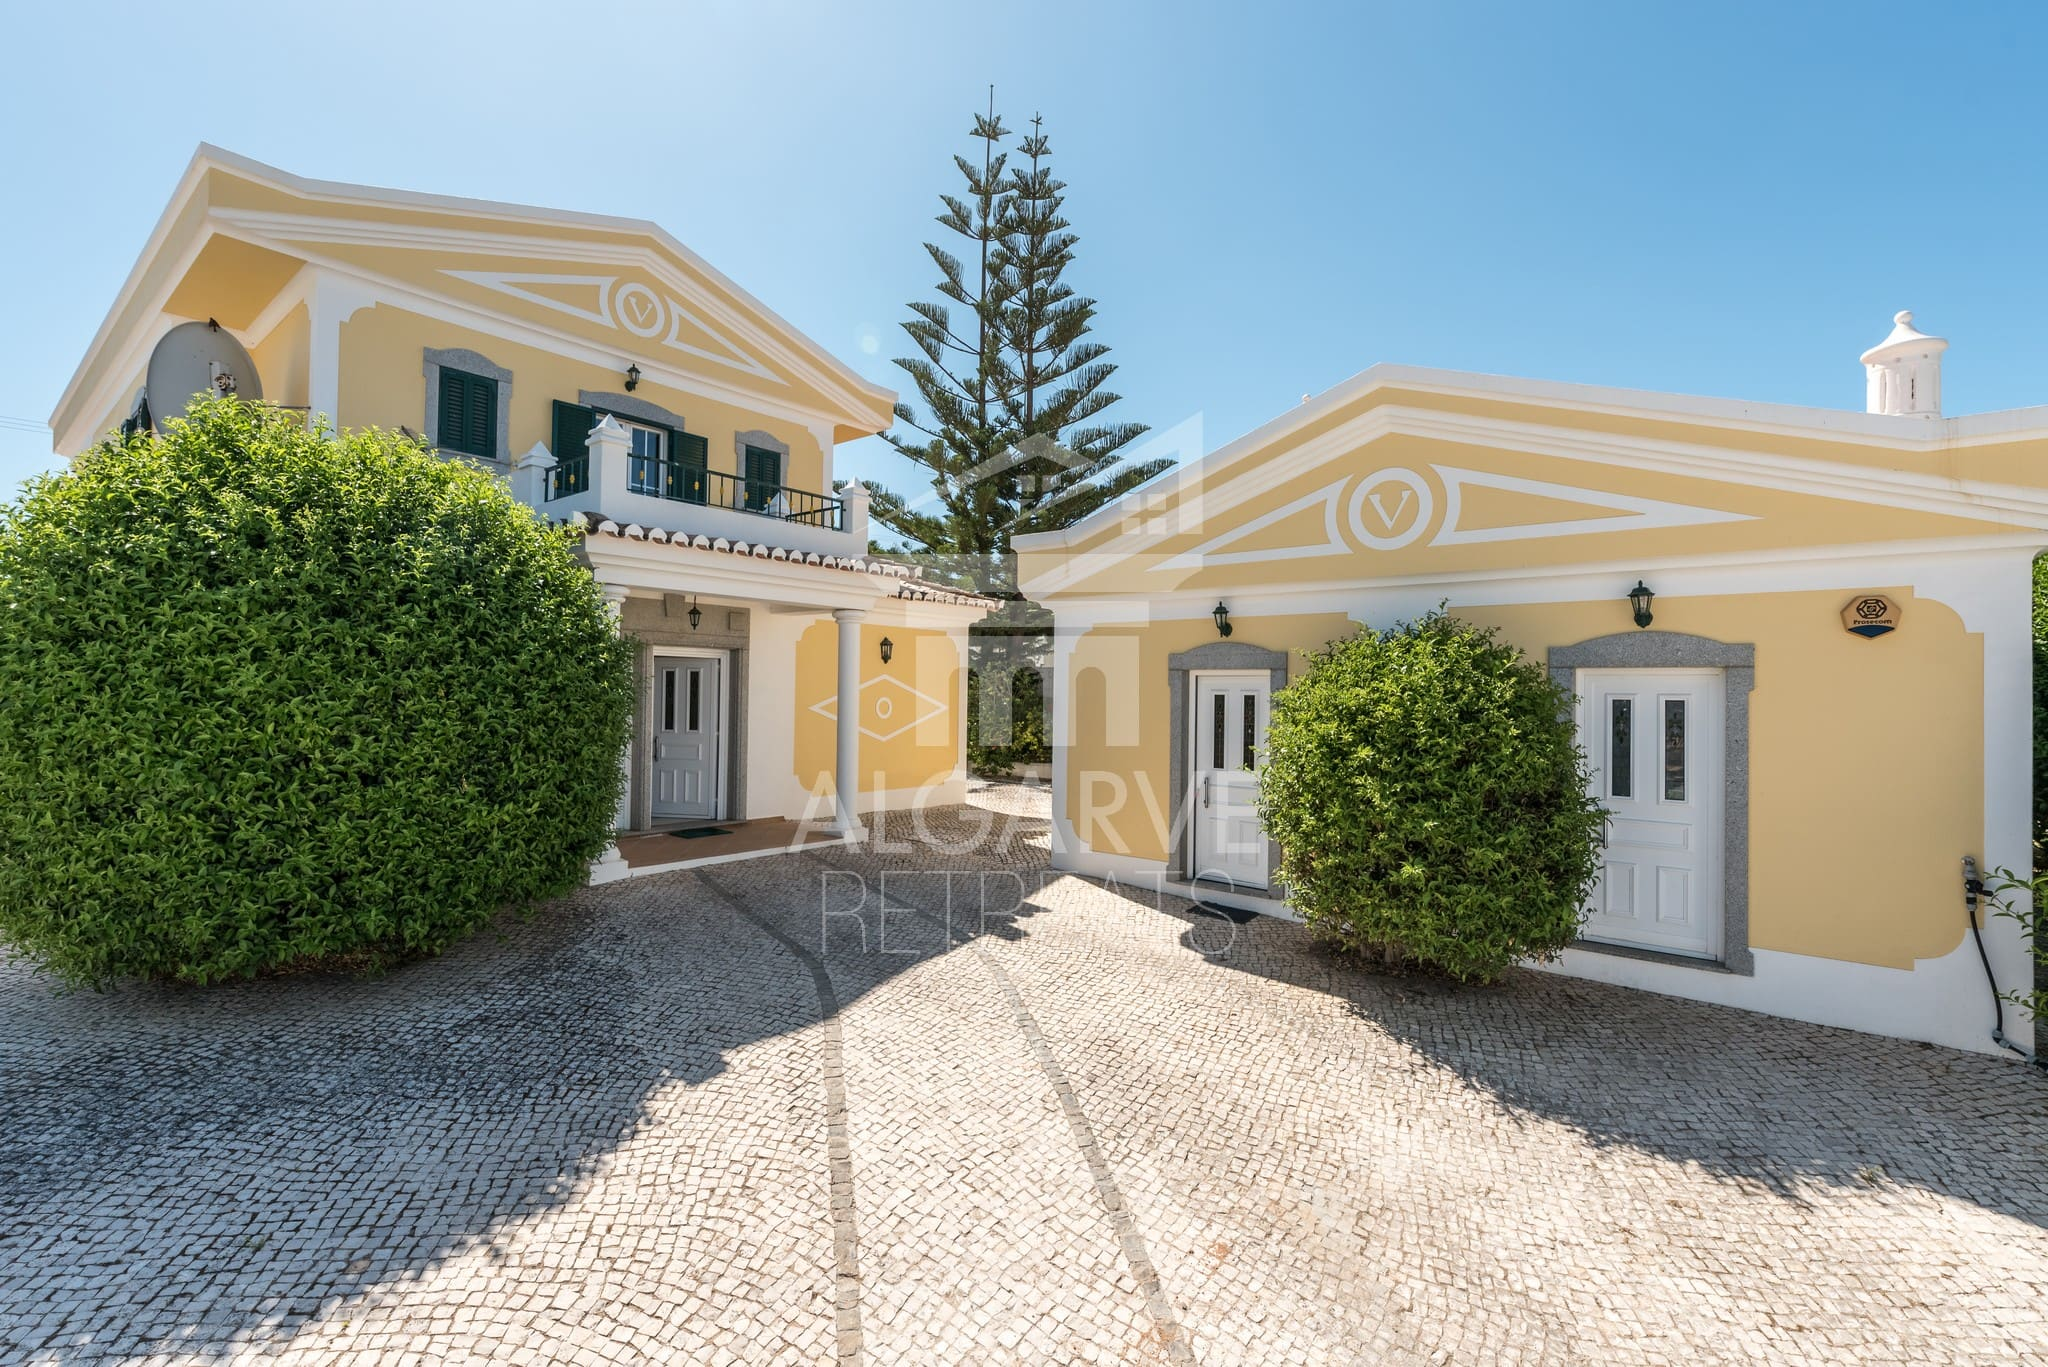 3 Bedrooms Villa with panoramic views.